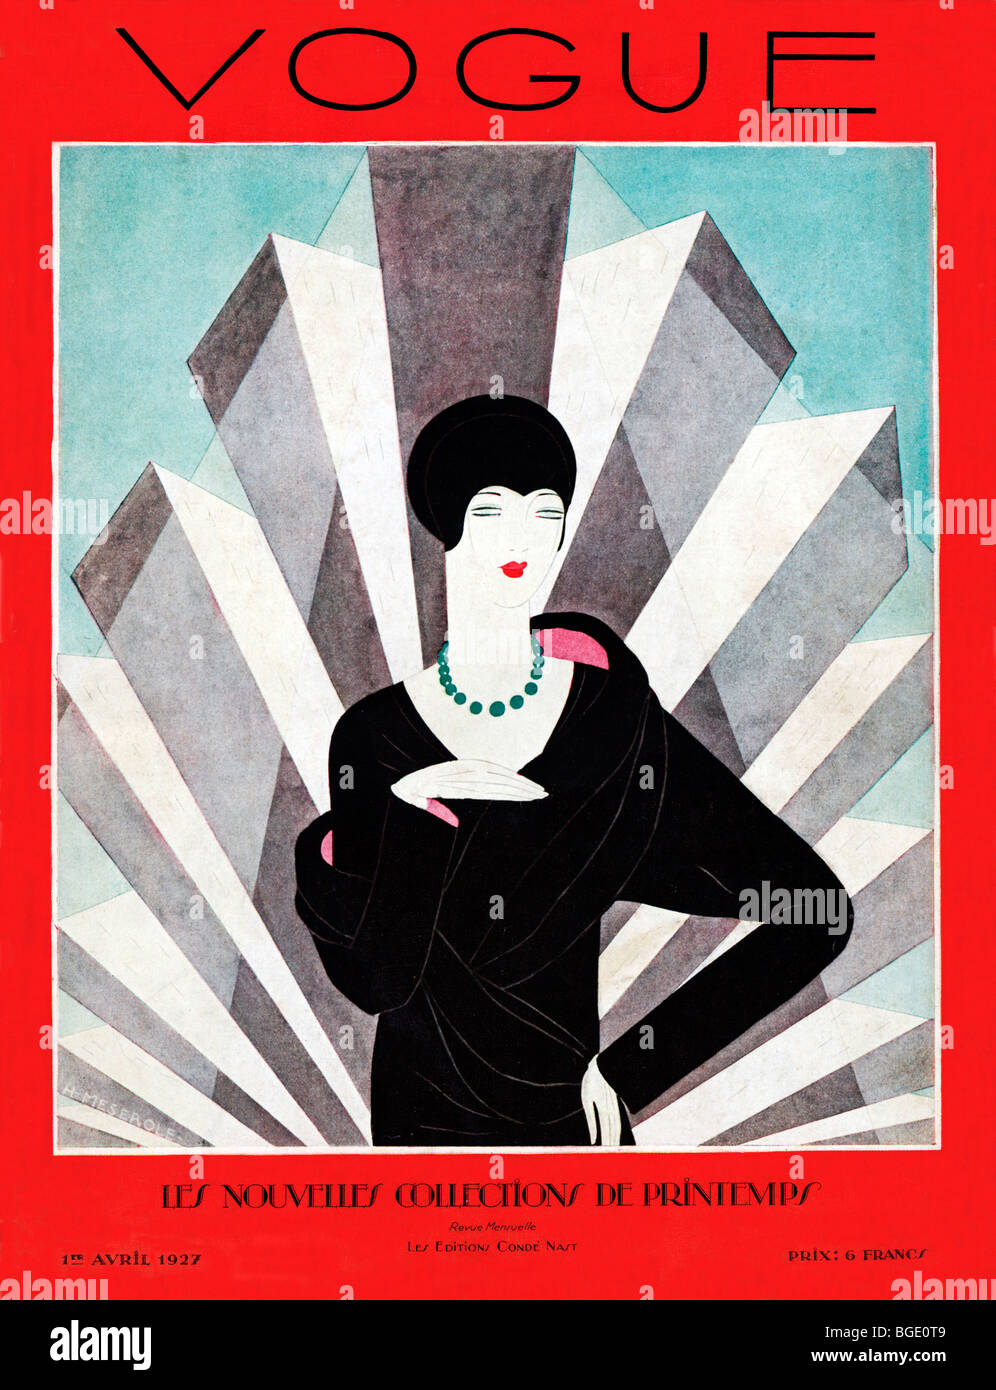 vogue april 1927 art deco cover of the fashion magazine in its stock photo royalty free image. Black Bedroom Furniture Sets. Home Design Ideas